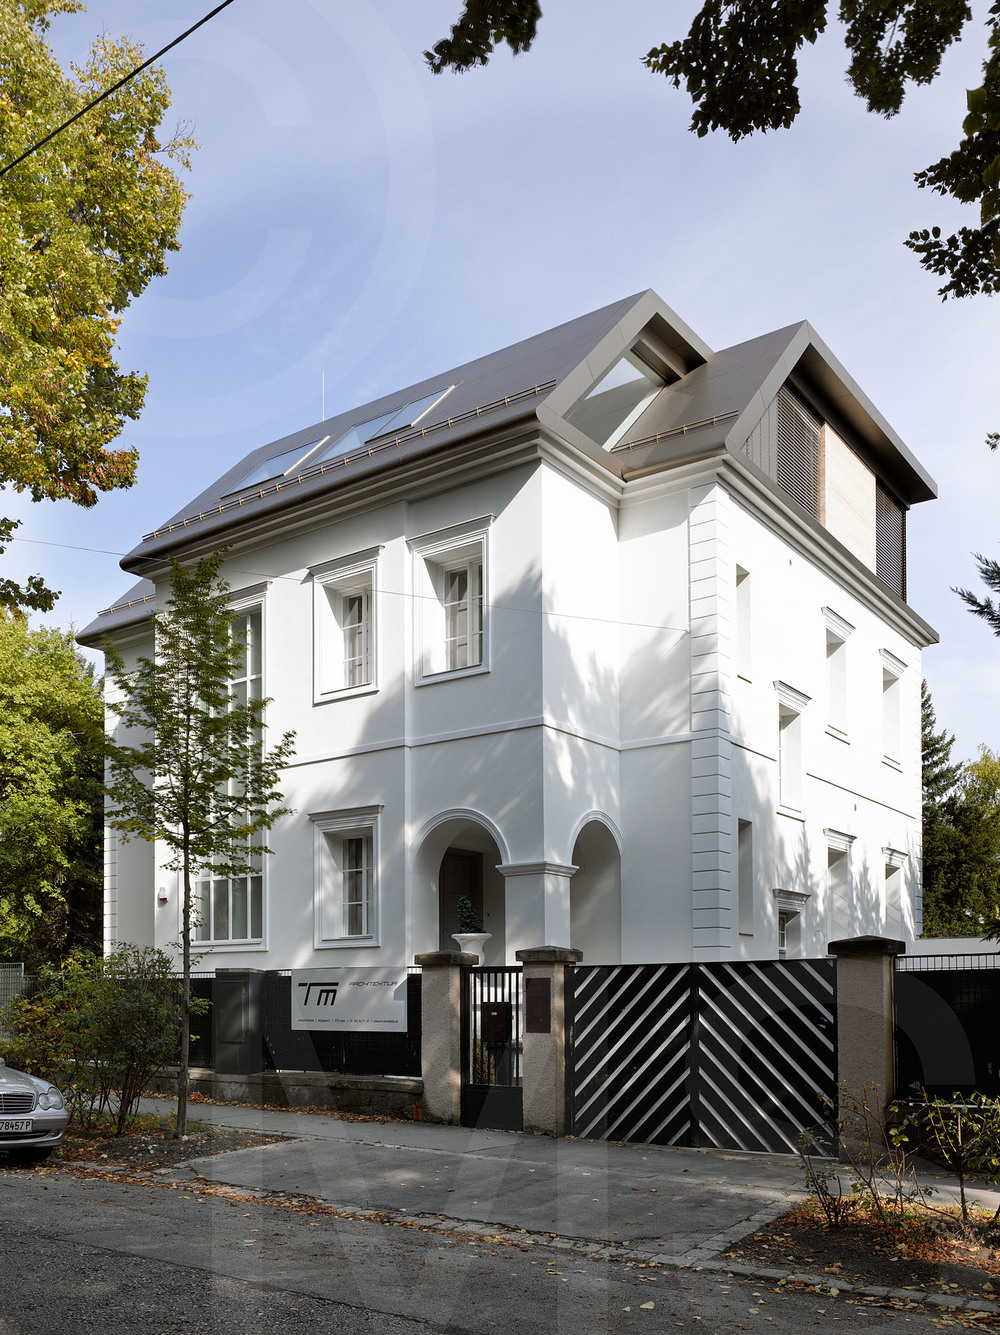 Villa Cottagegasse 1190 Wien  TM Architektur